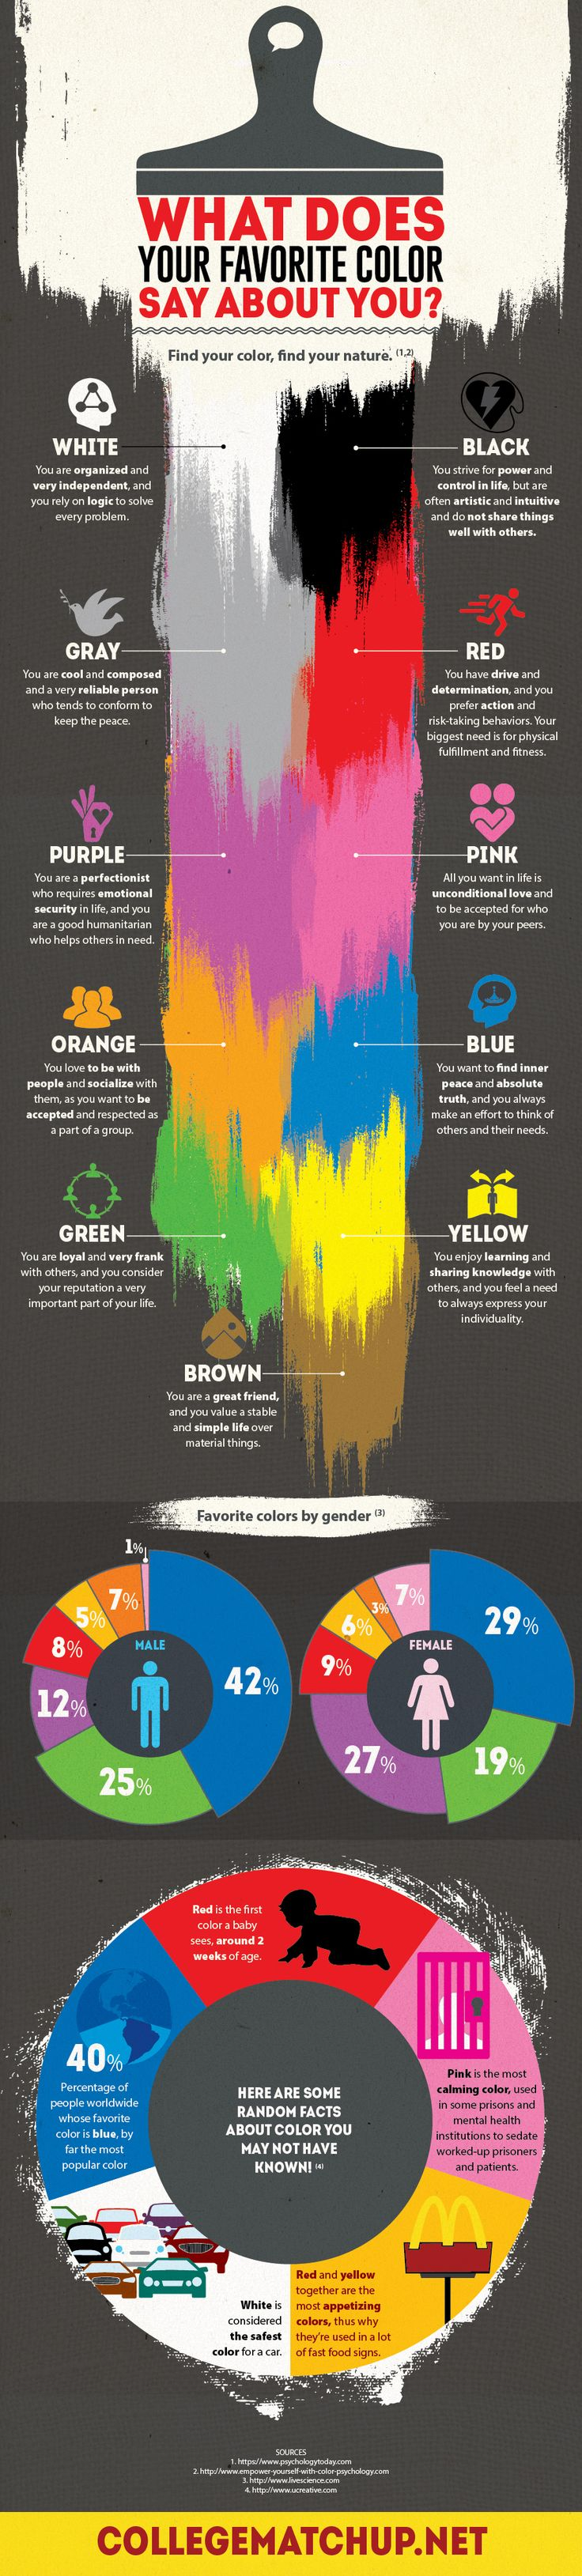 Find out what your favorite color means. Our post has an excellent infographic with all the answers. Find out what it all means now.